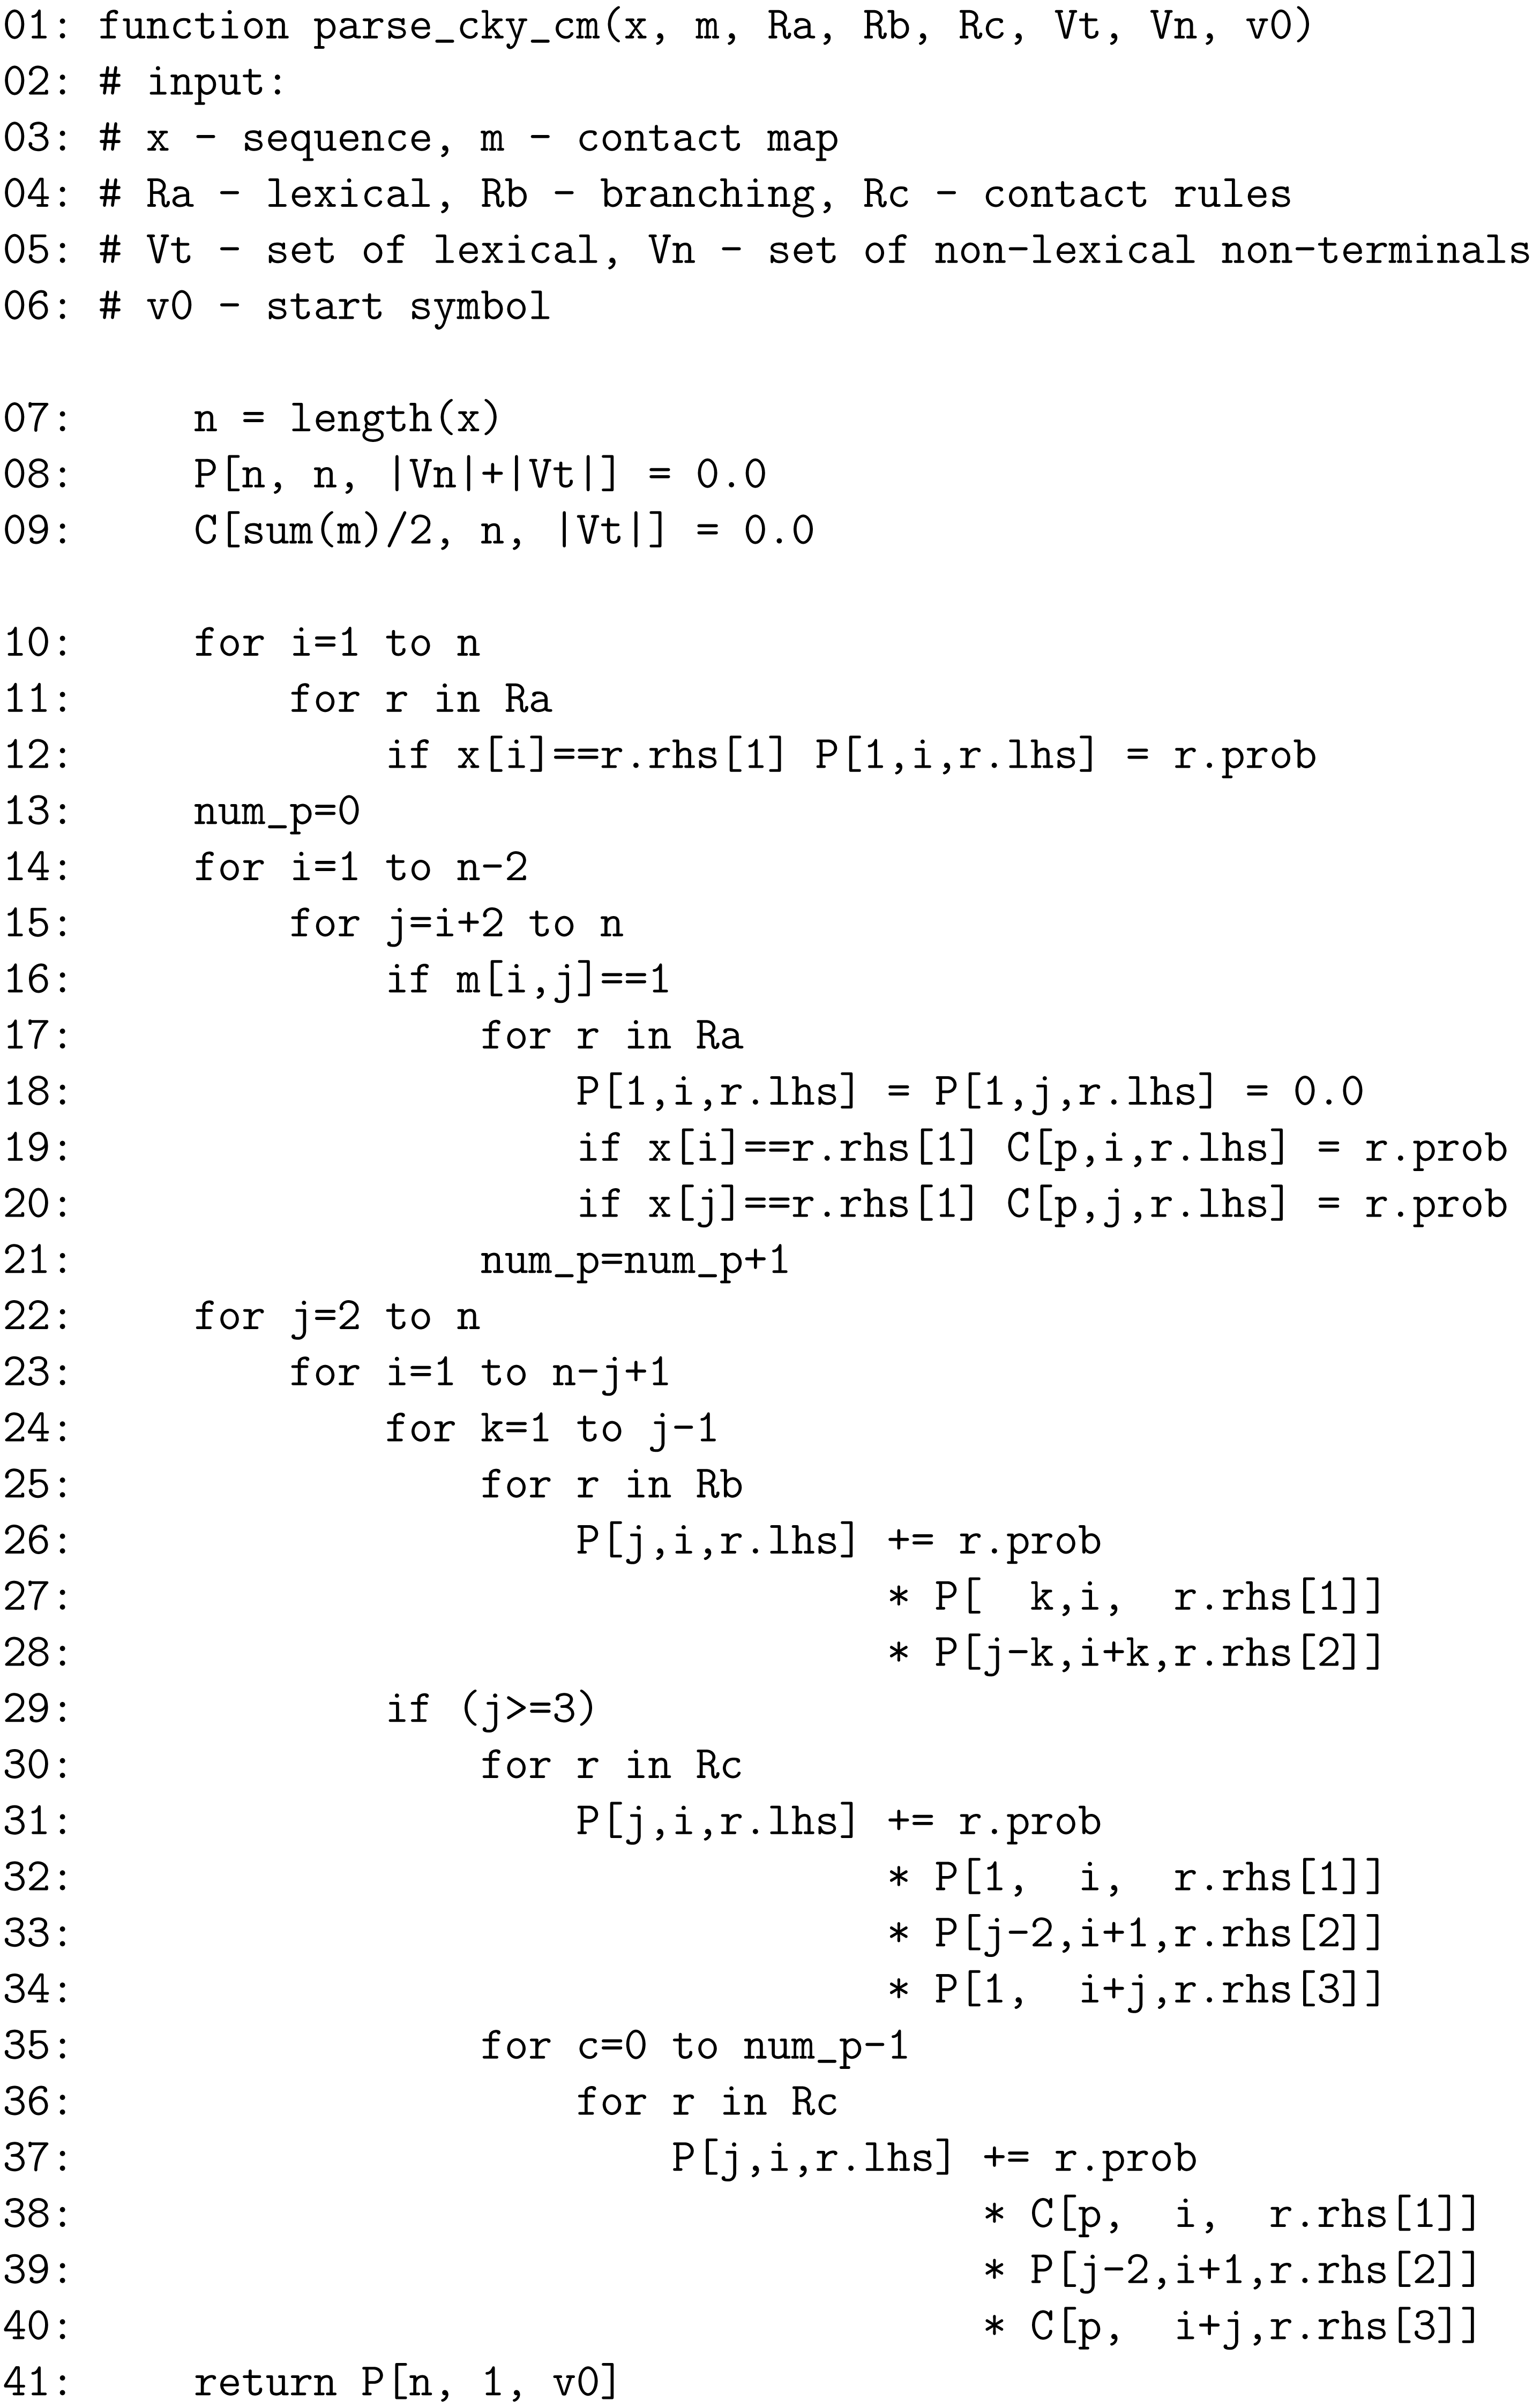 Estimating probabilistic context-free grammars for proteins using